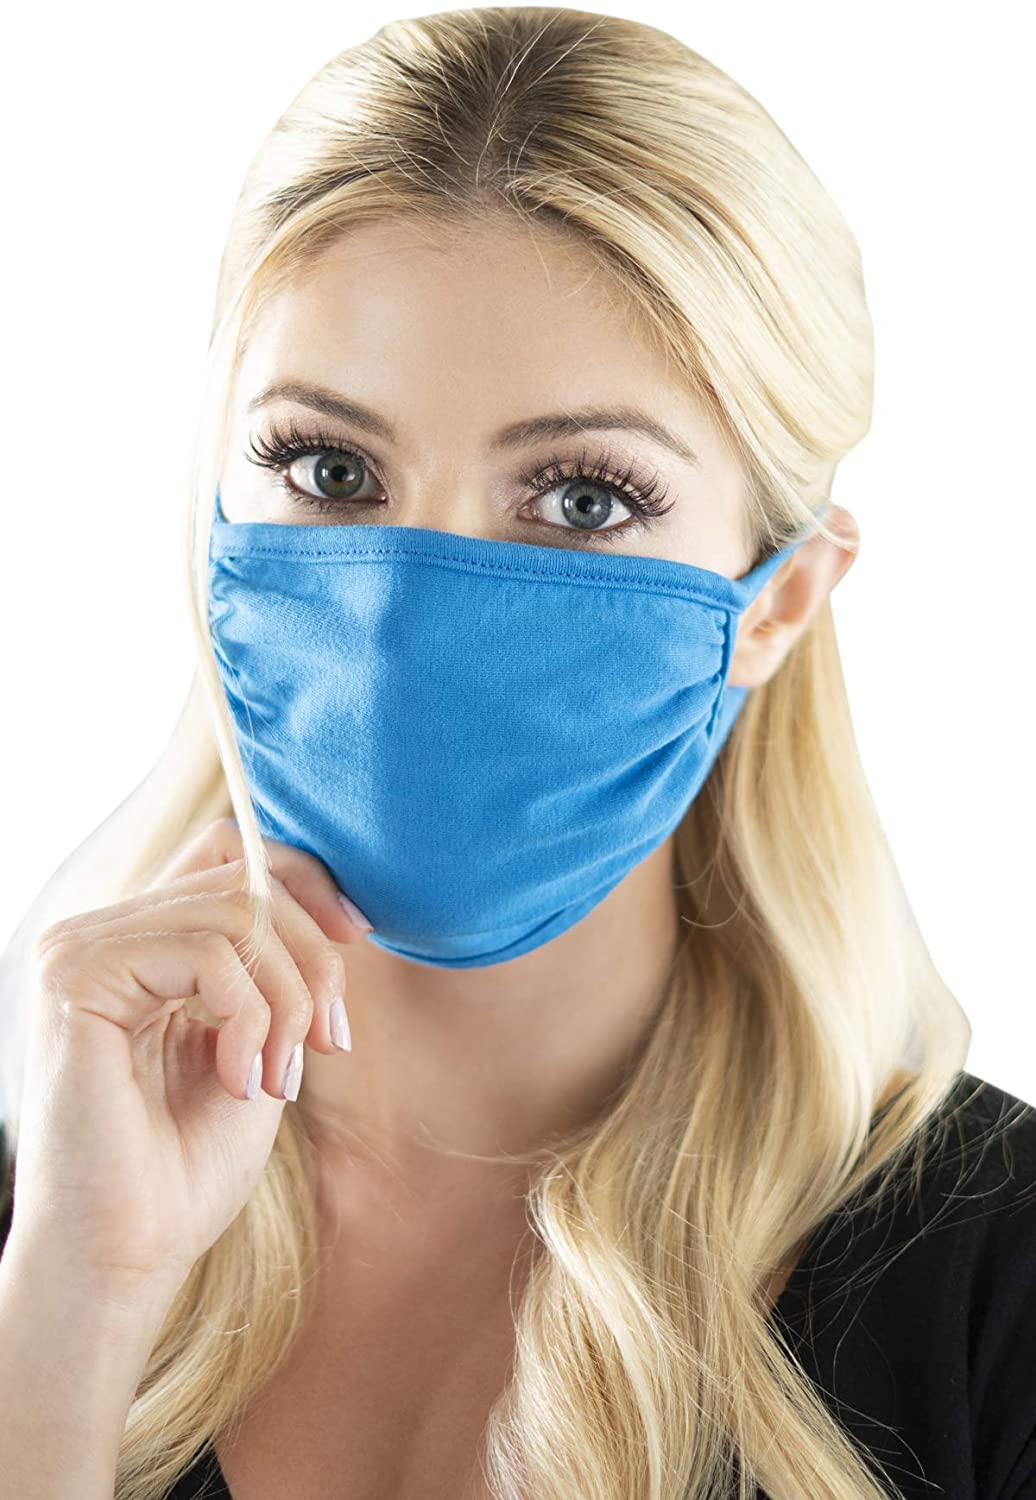 Reusable Fabric Face Mask Unisex Washable Covering - Cute Print Cloth Comfy Breathable Adjustable Outdoor Mouth Shield Protection Men Women (Round/Ear Loop - Solid Turquoise)